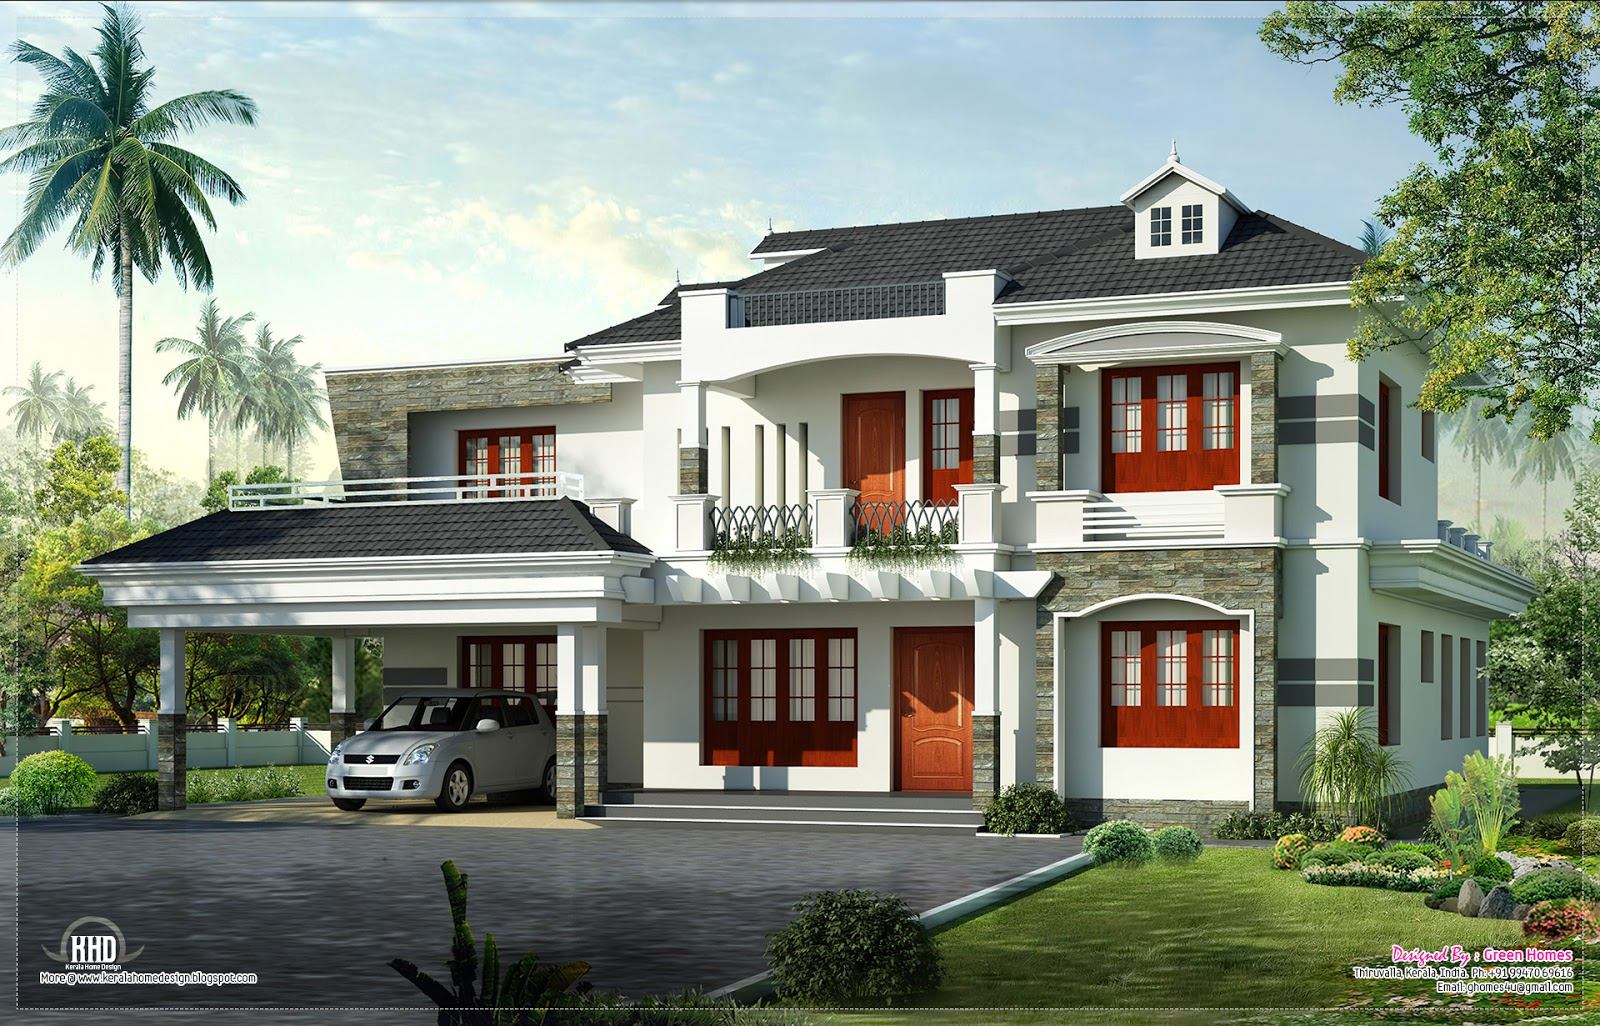 traditional colonial house plans online image house plans colonial home plans colonial home traditional colonial house plans